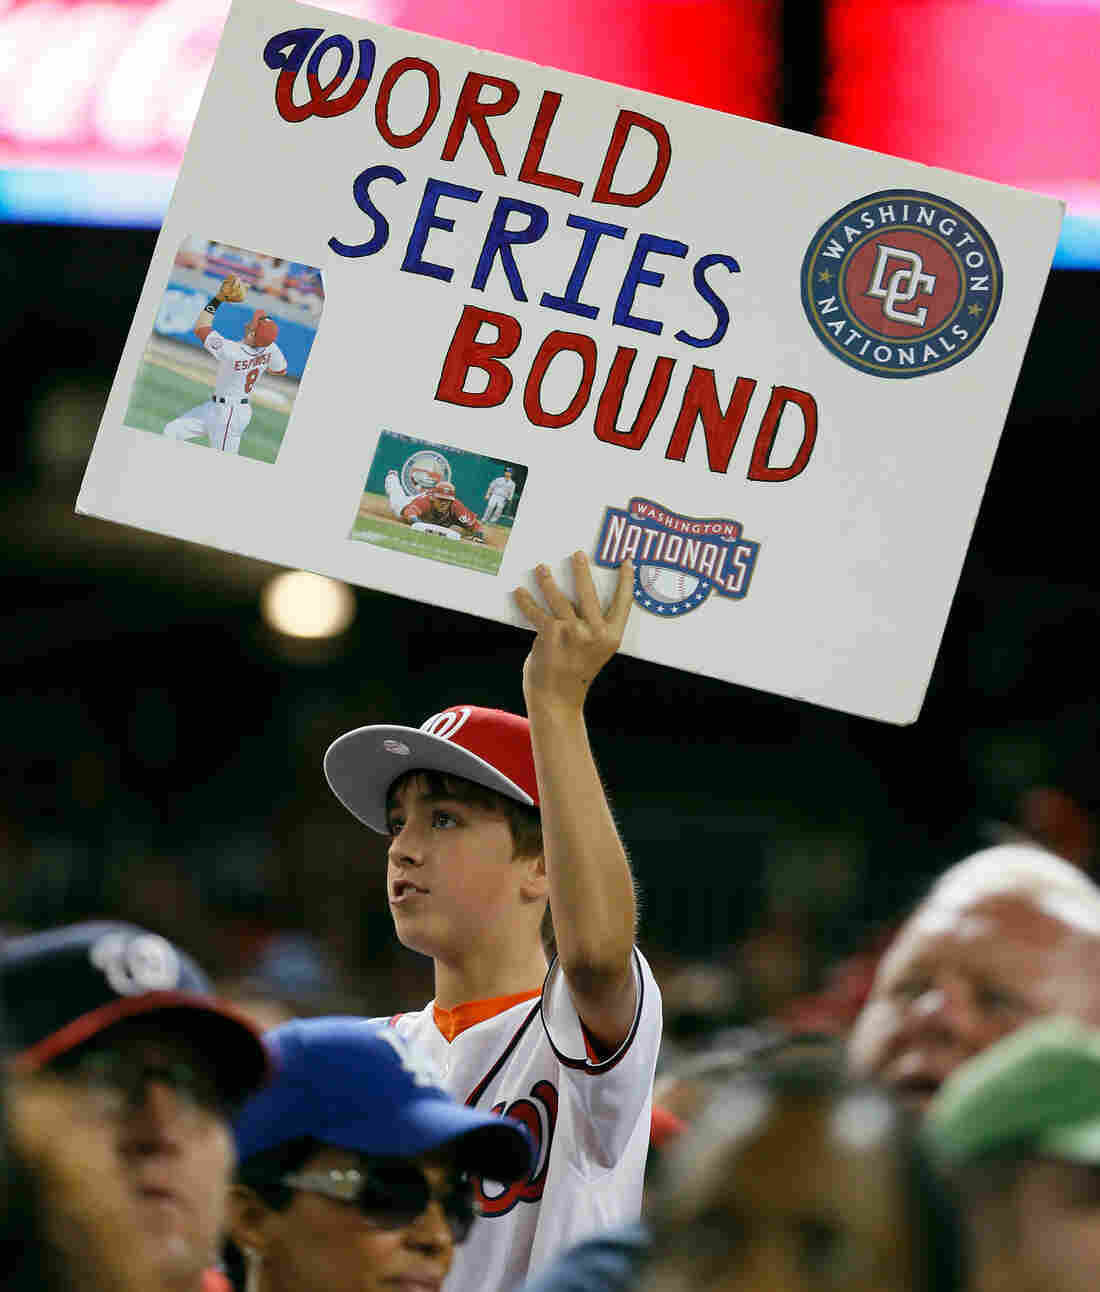 Hoping for the most: A Washington Nationals fan at Thursday night's game in D.C., when the team clinched a playoff spot.